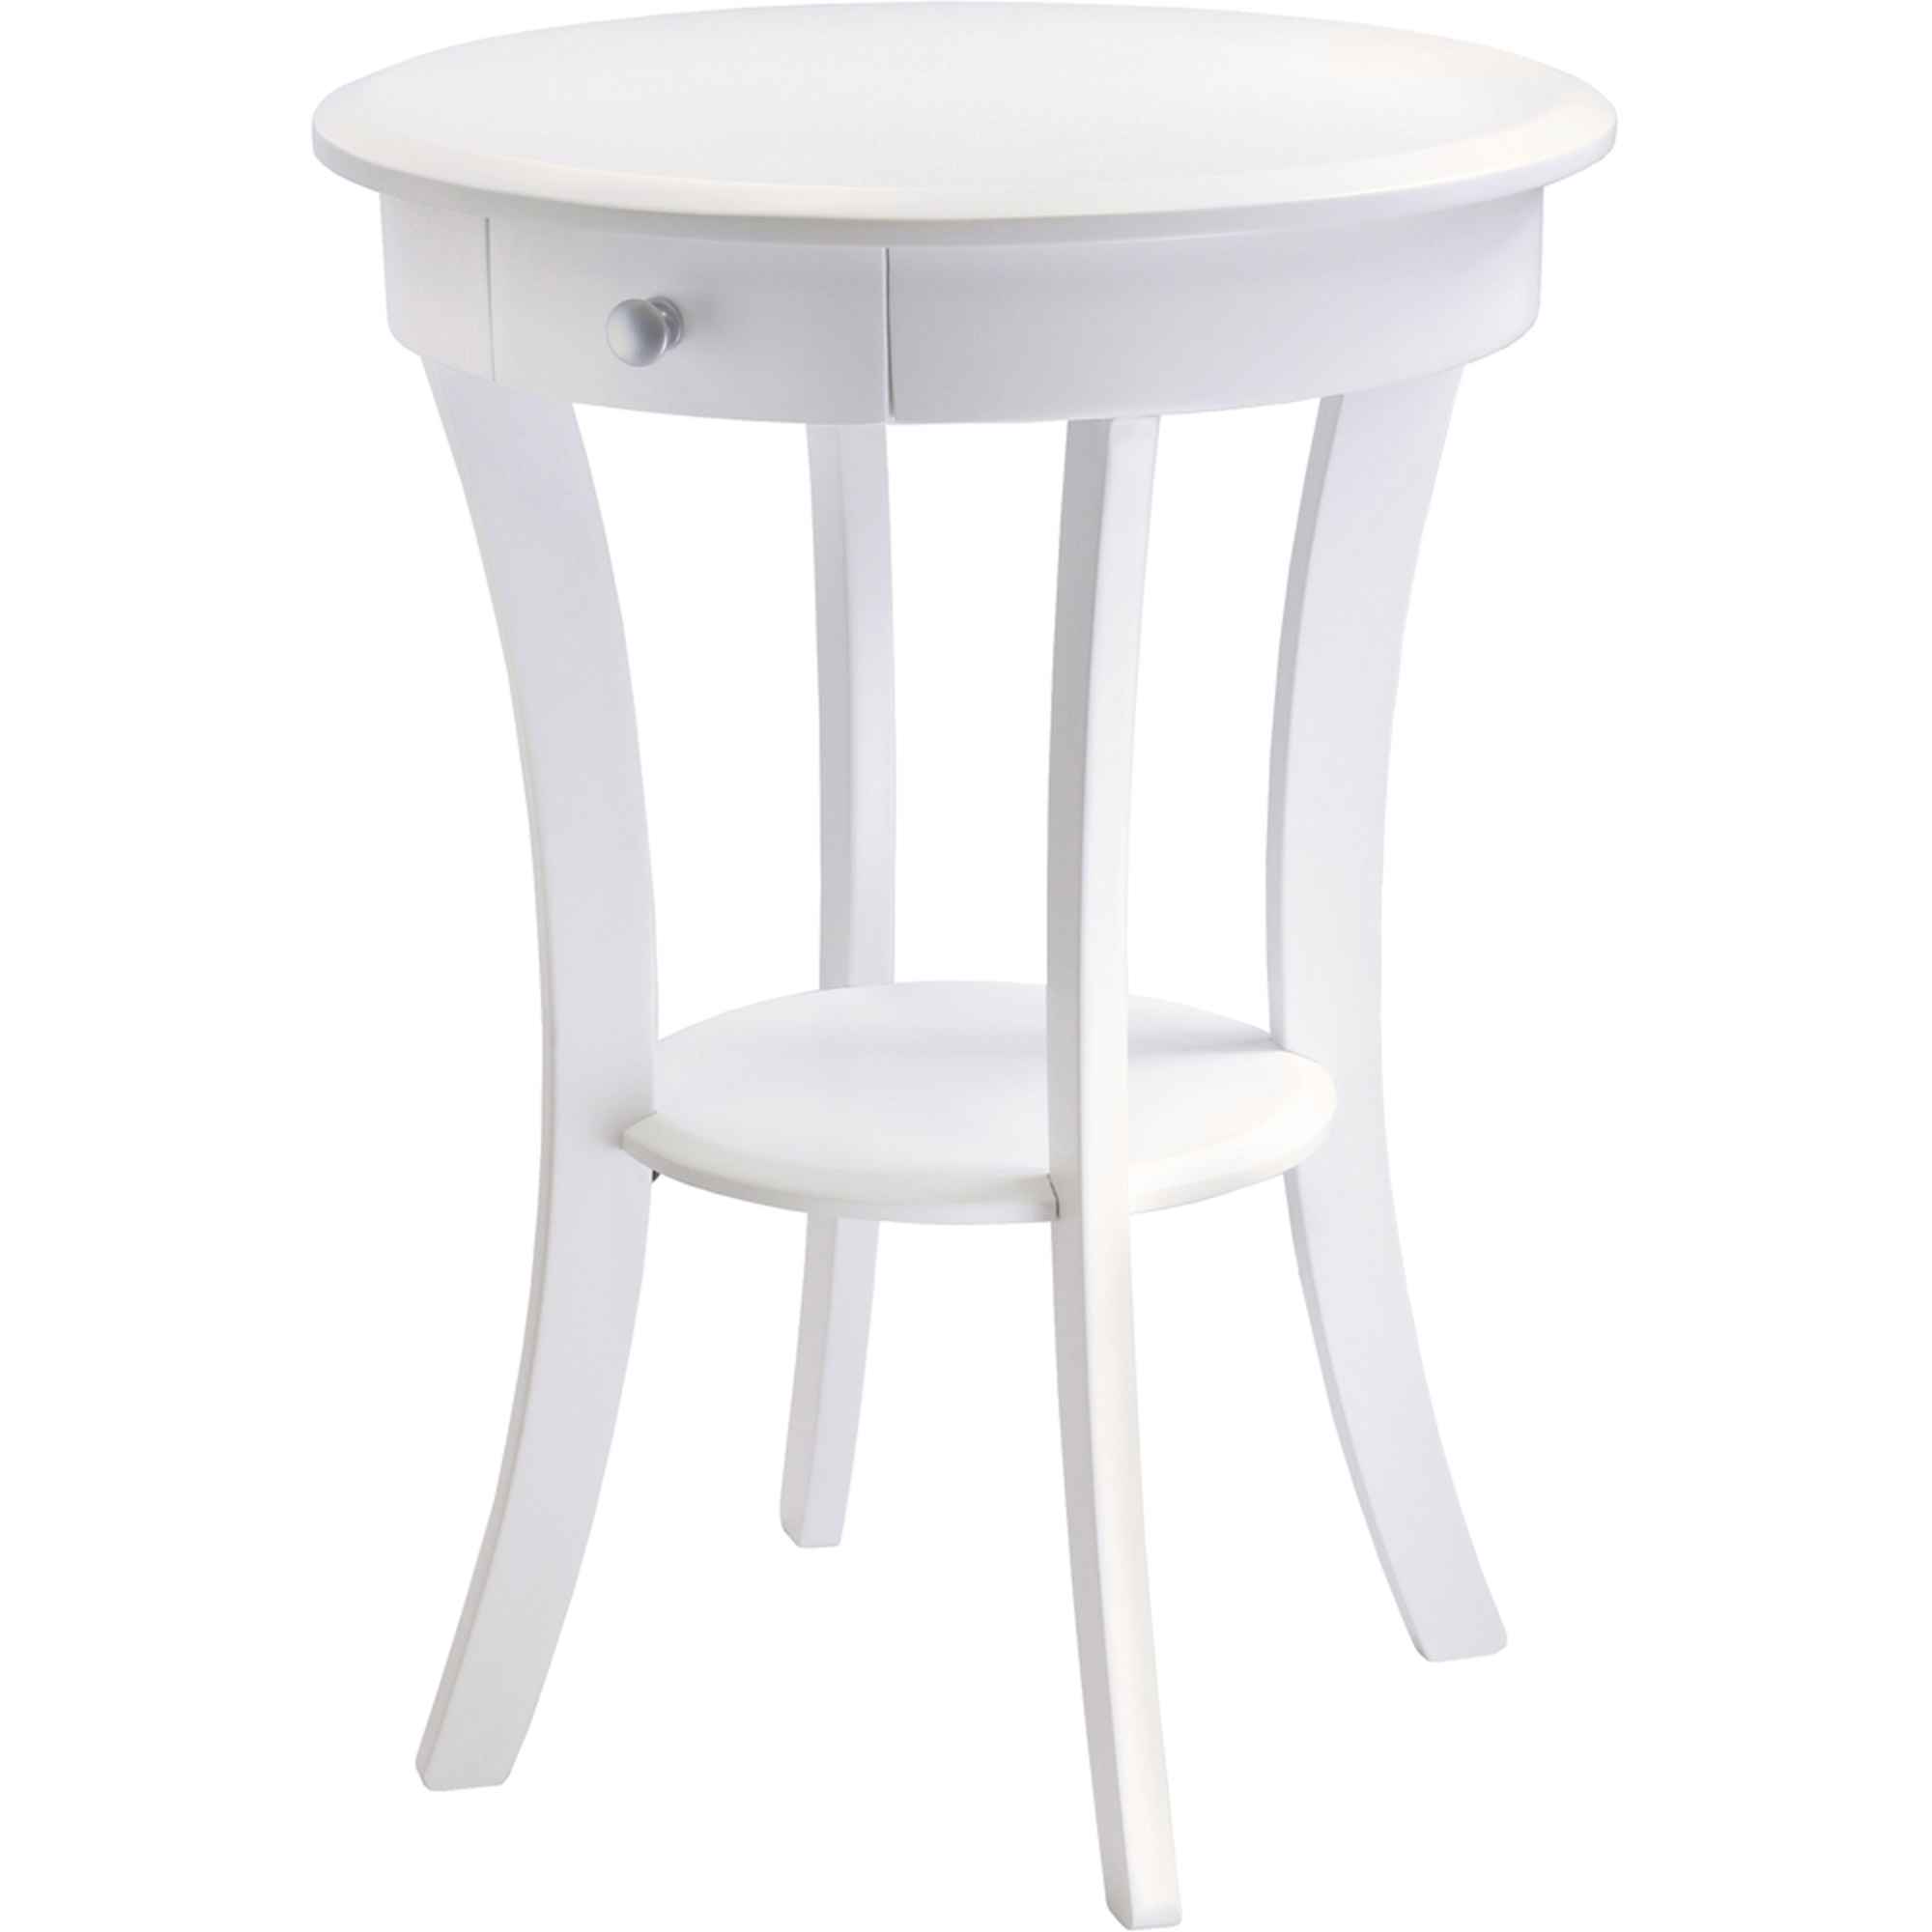 sasha round accent table small with shelves livingroom side tables glass stacking coffee modern west elm patio furniture linen napkins bulk leg extenders tripod sofa oak storage